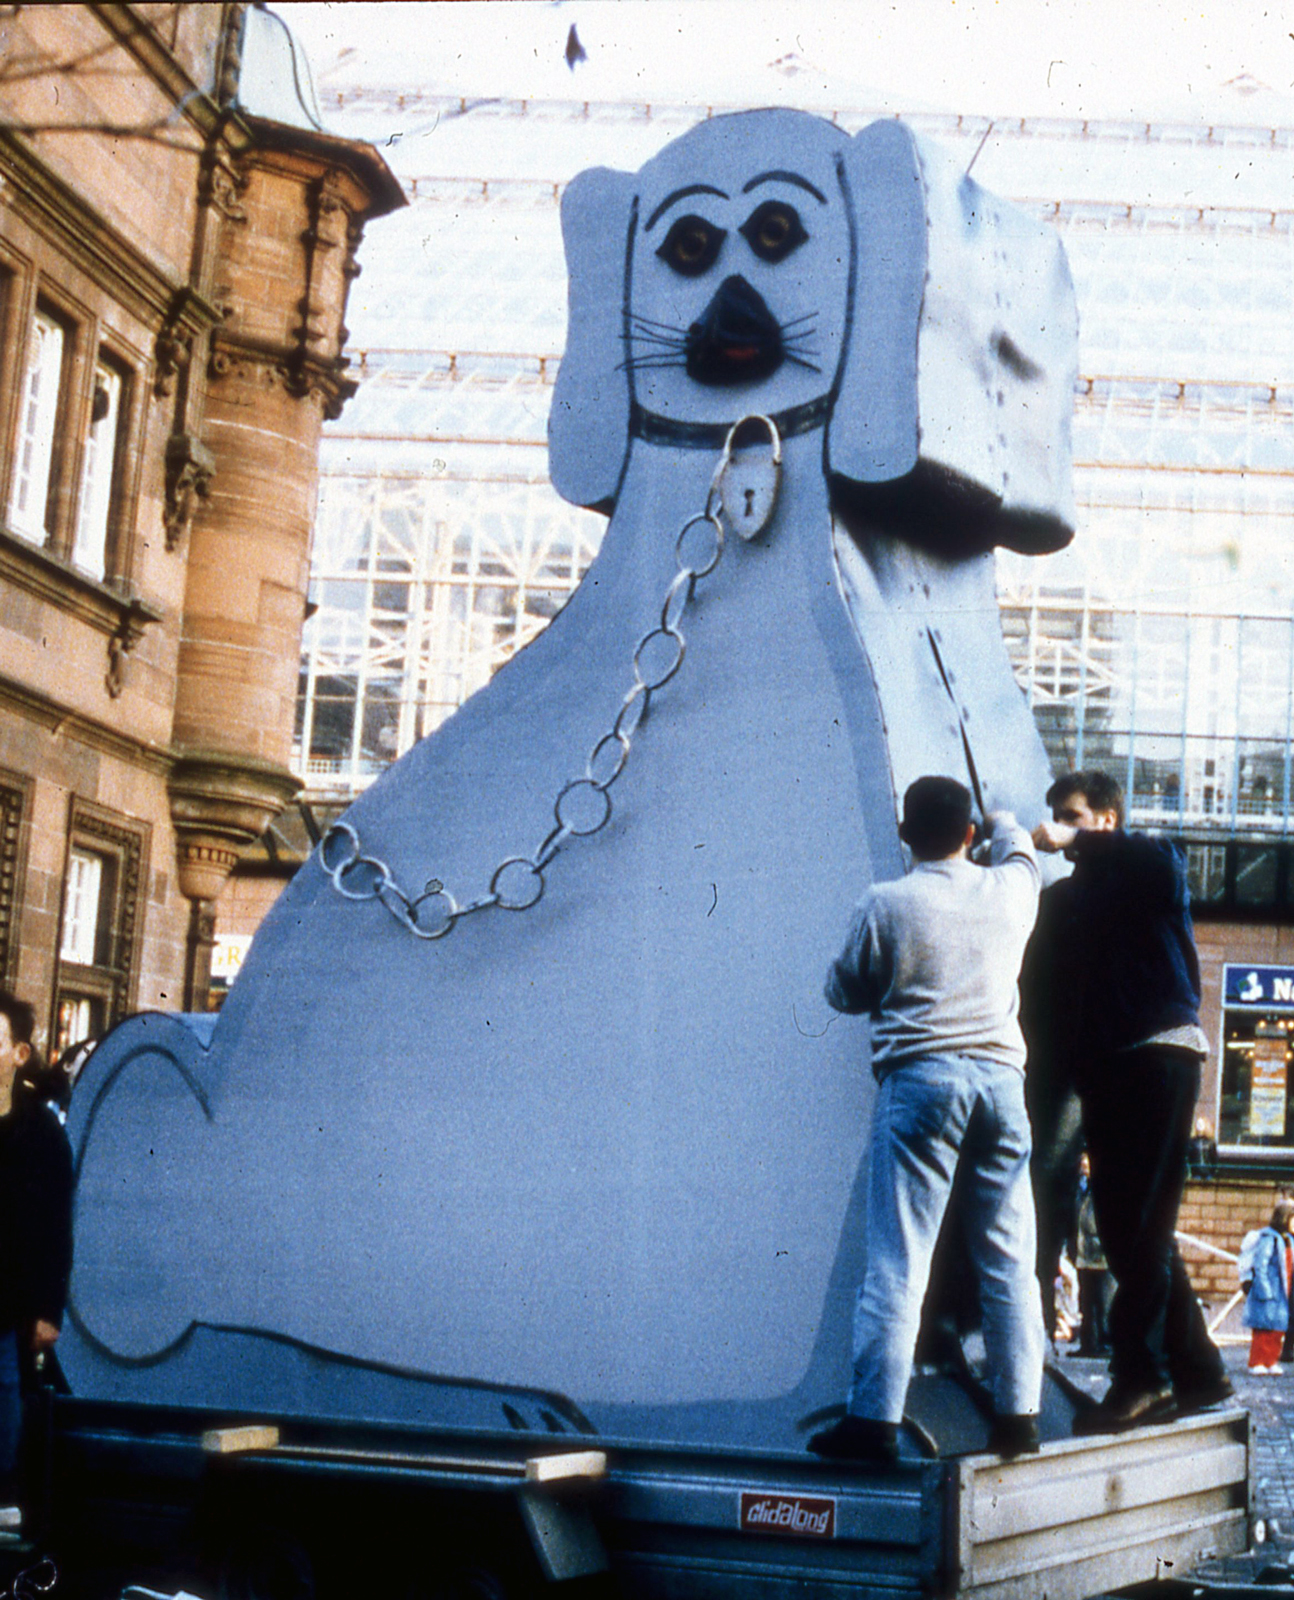 George Wyllie's 15 foot Wally Dug sculpture on a trailer in St Enoch Square Glasgow